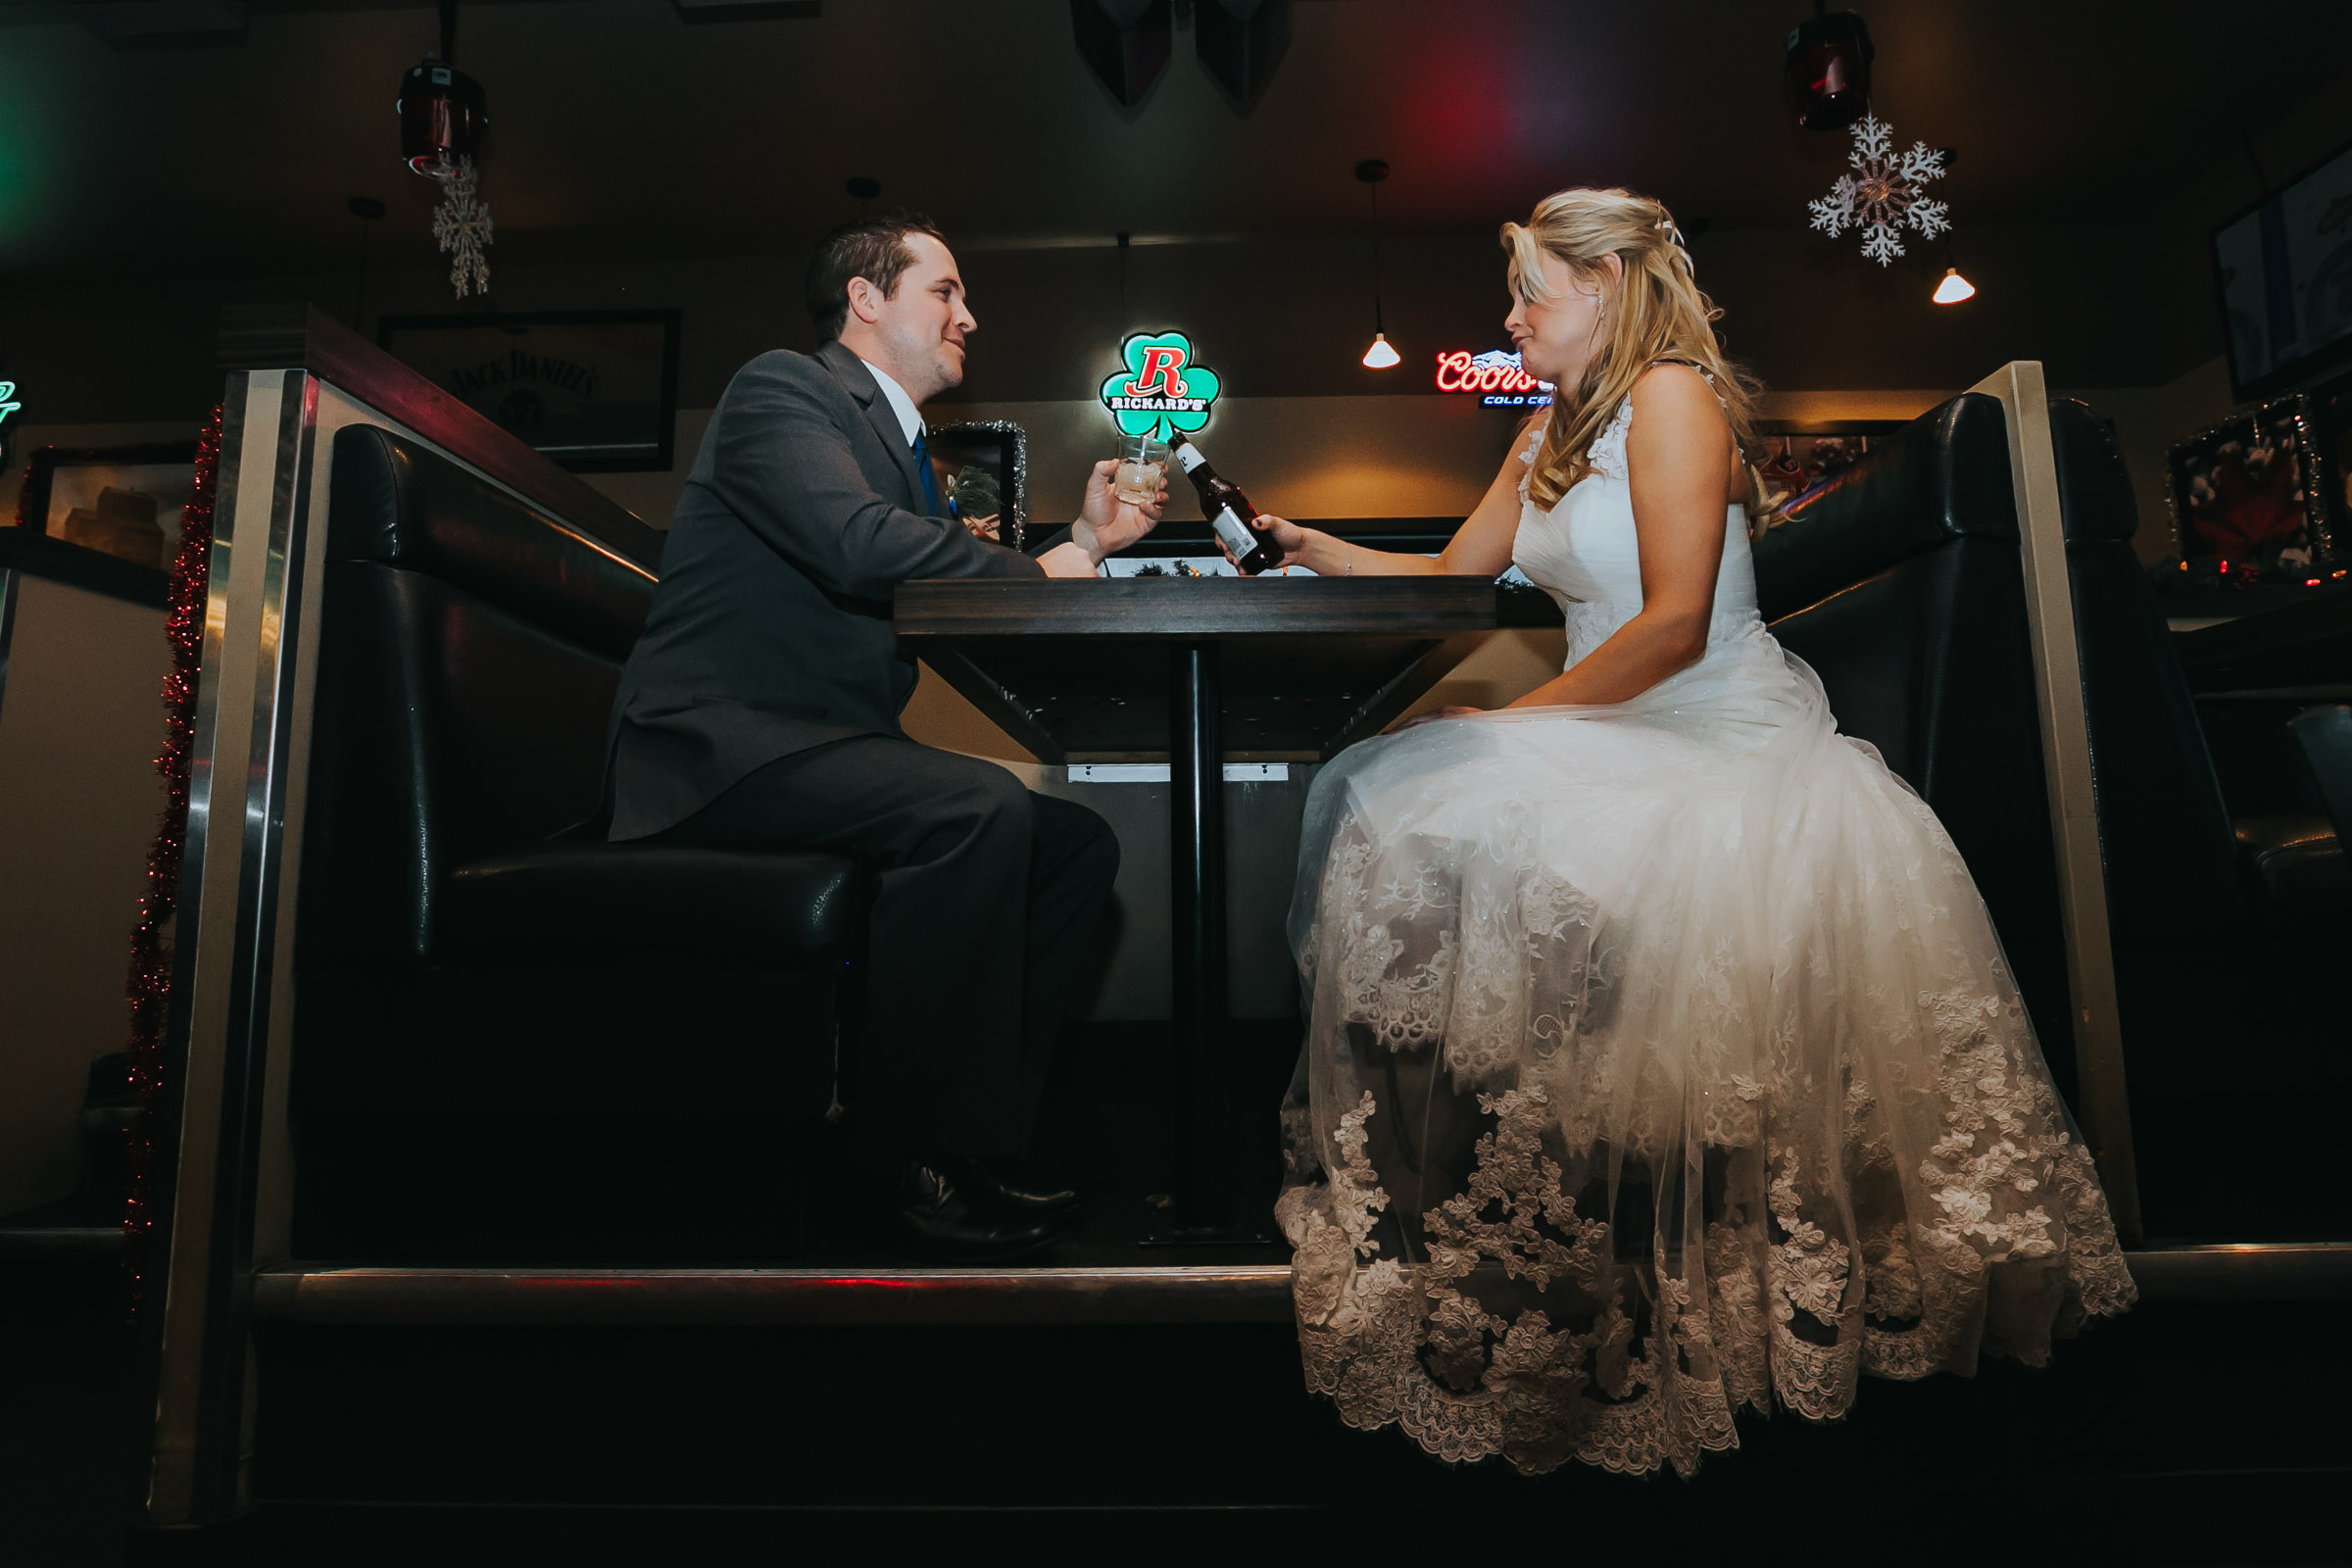 Schrumannwedding__N9A7033_dec102016.jpg